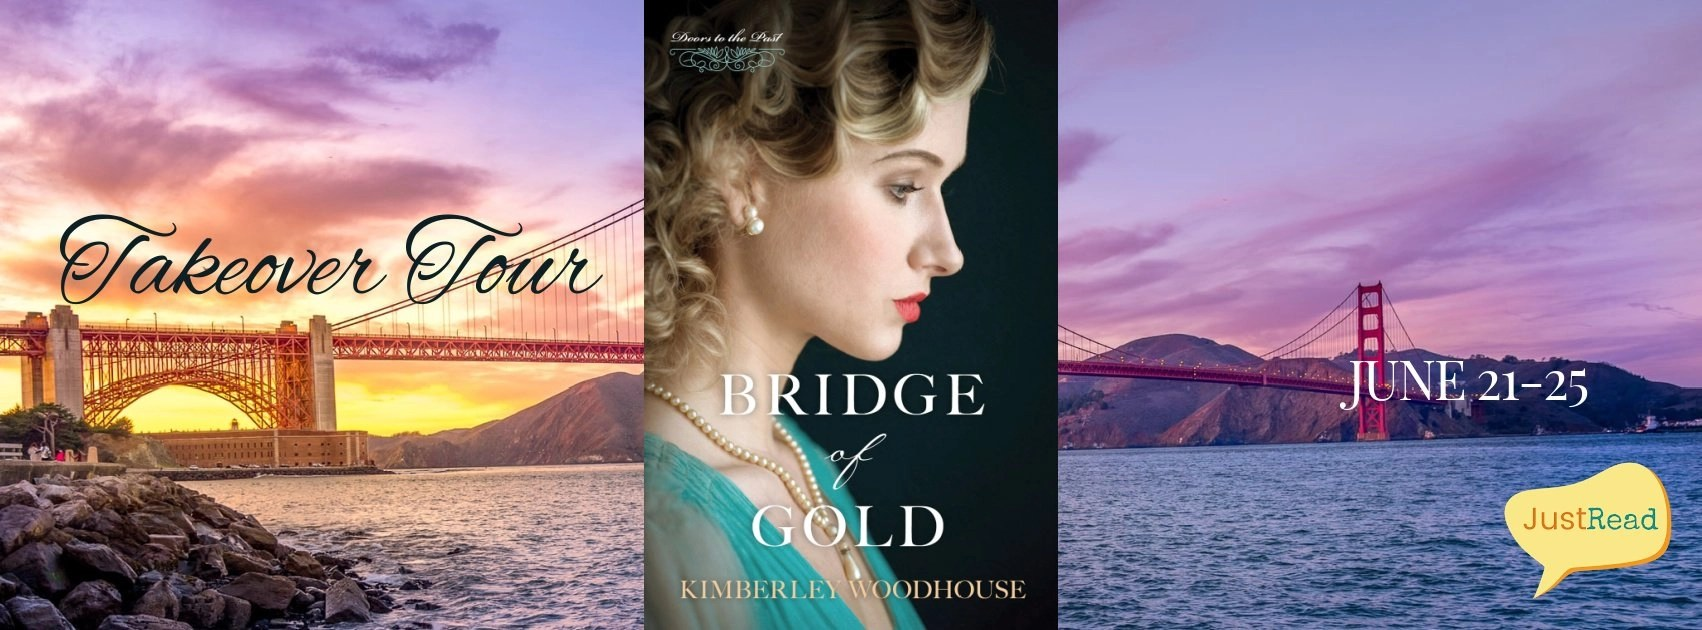 Welcome to the Bridge of Gold Takeover Tour & Giveaway!